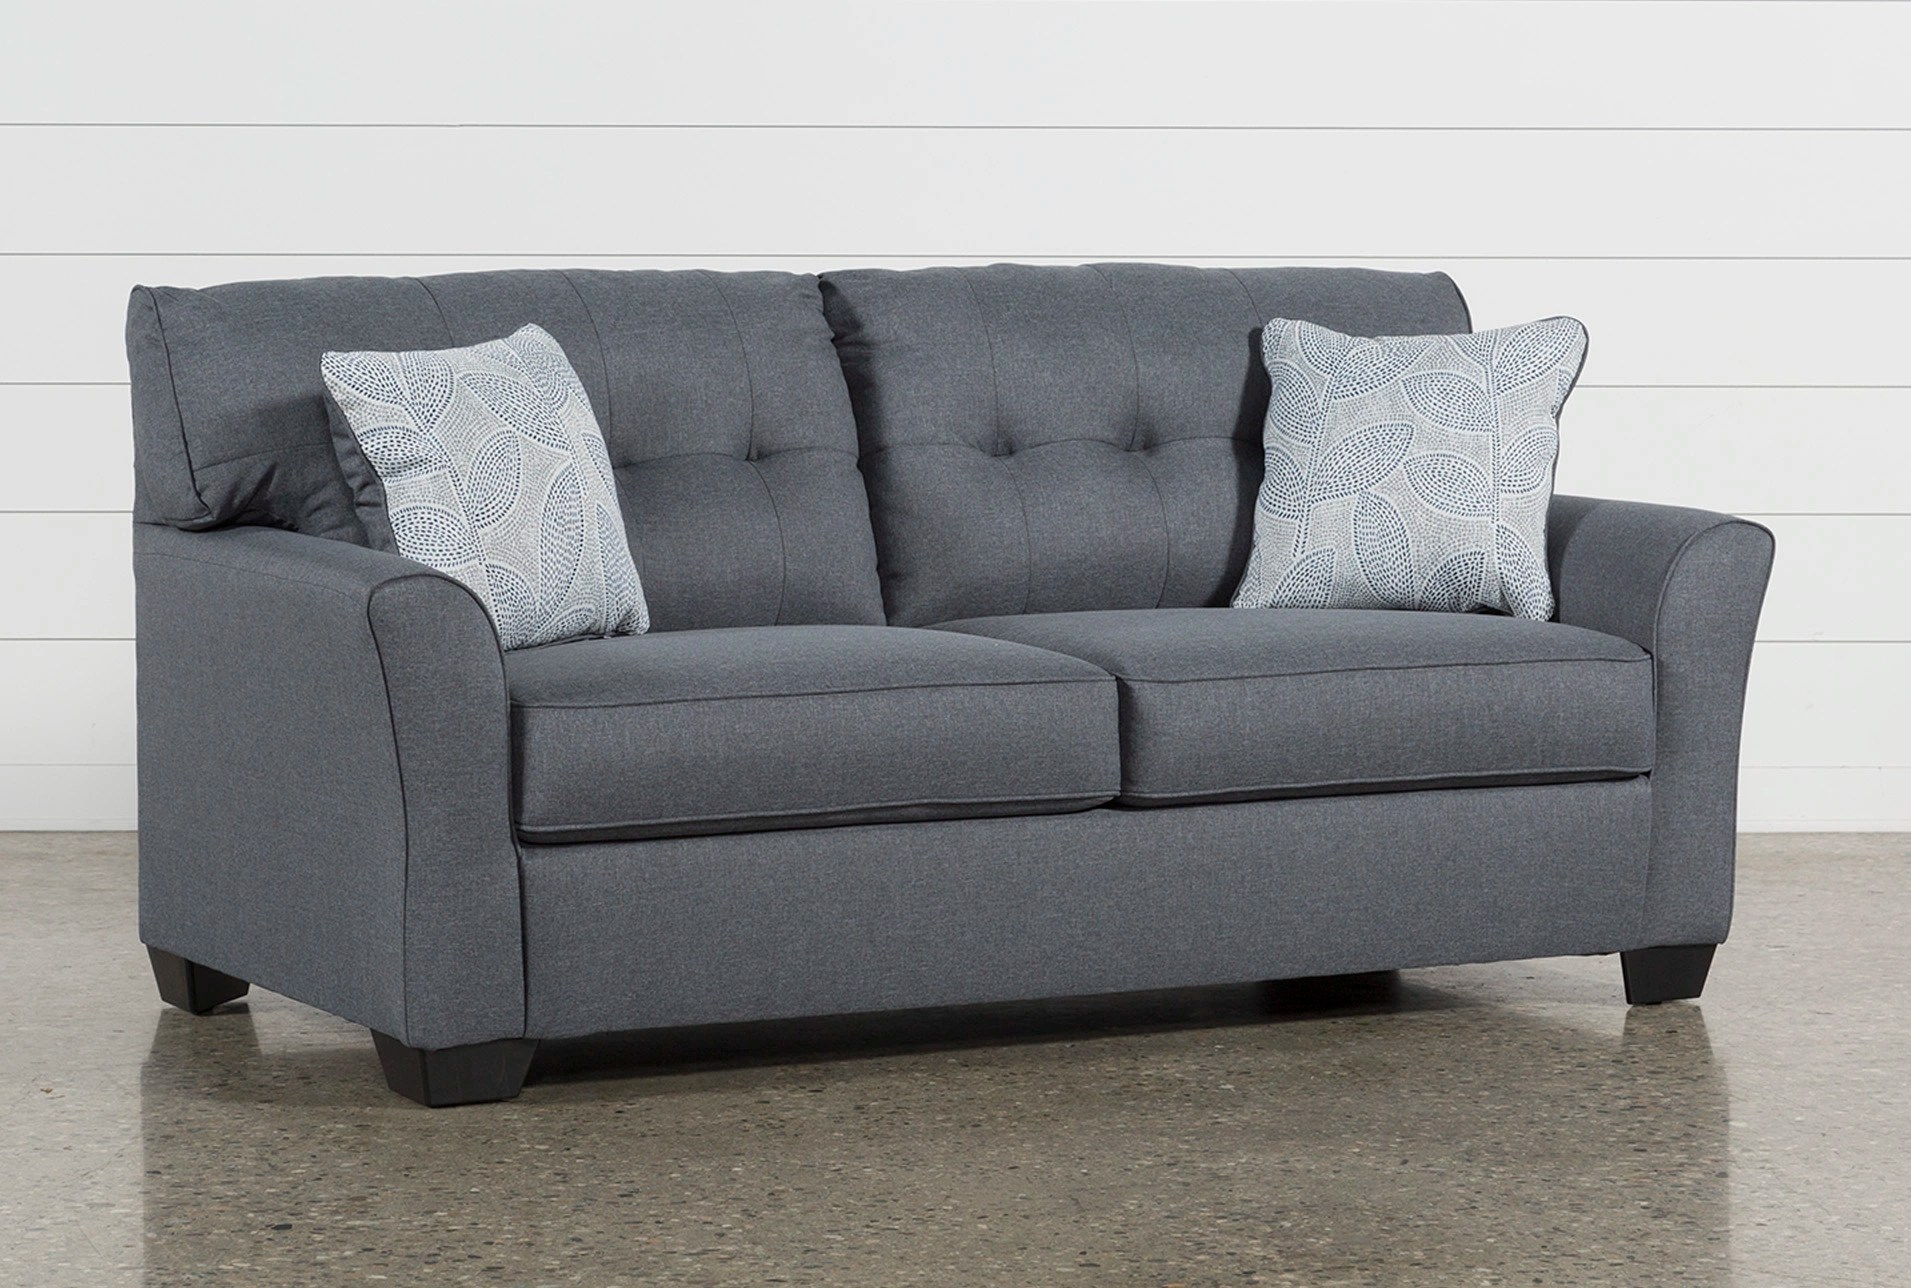 Habitat Rupert Sofa Review Dark Gray Sofa Bed Powered Store Powered Store